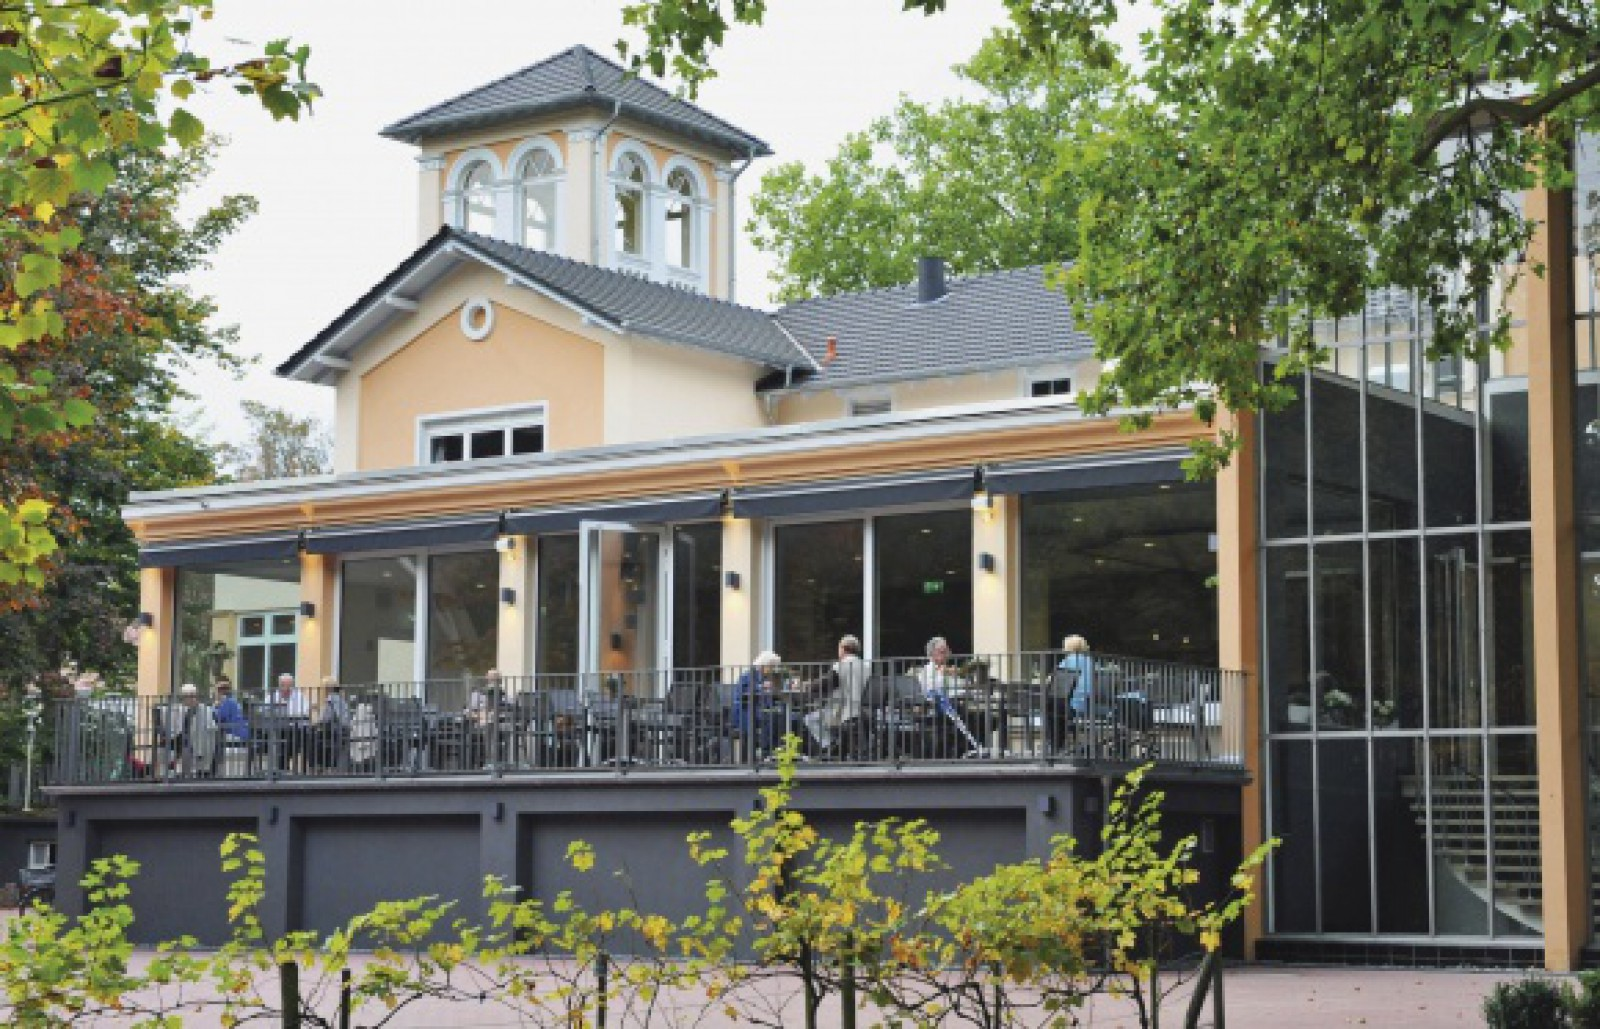 Küche Creativ Bad Kreuznach Bewertung Restaurant Kurhaus Am Rheingrafenstein In Bad Kreuznach